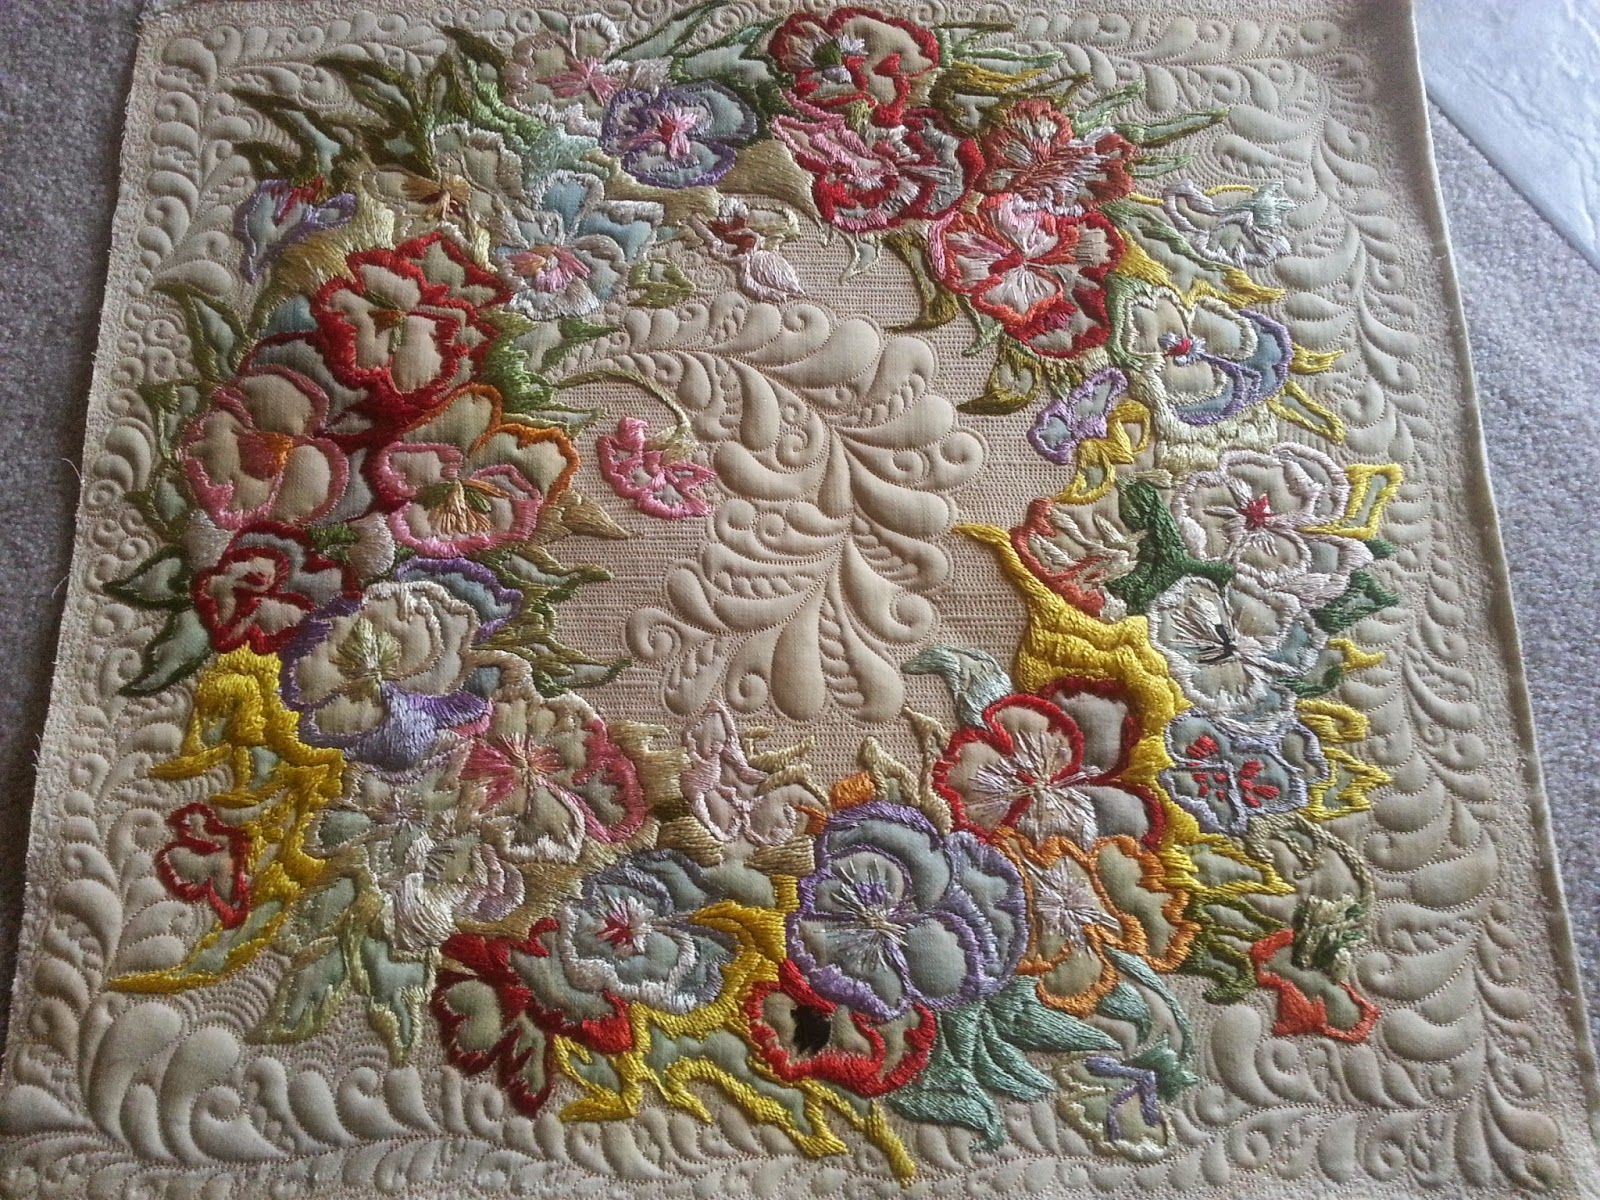 Embroidery Quilt Label Designs : 1000+ ideas about Embroidered Quilts on Pinterest Quilt Labels, Machine Embroidery Designs and ...